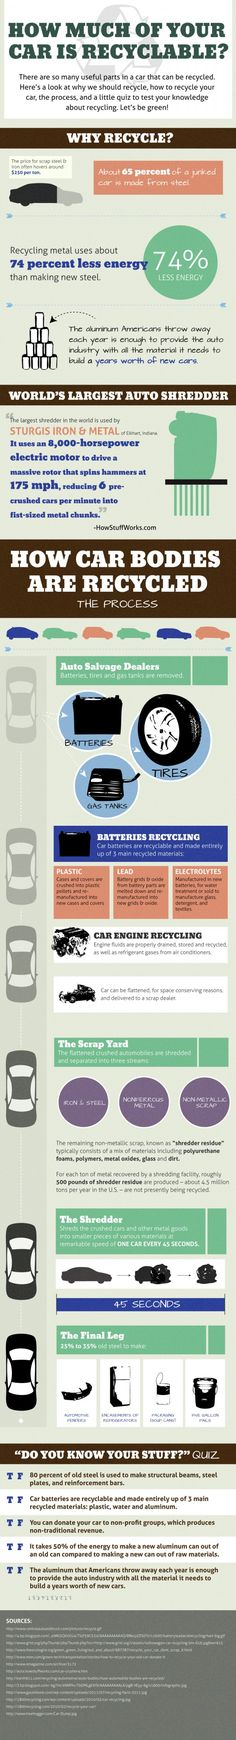 How Much of Your Car is Recyclable?